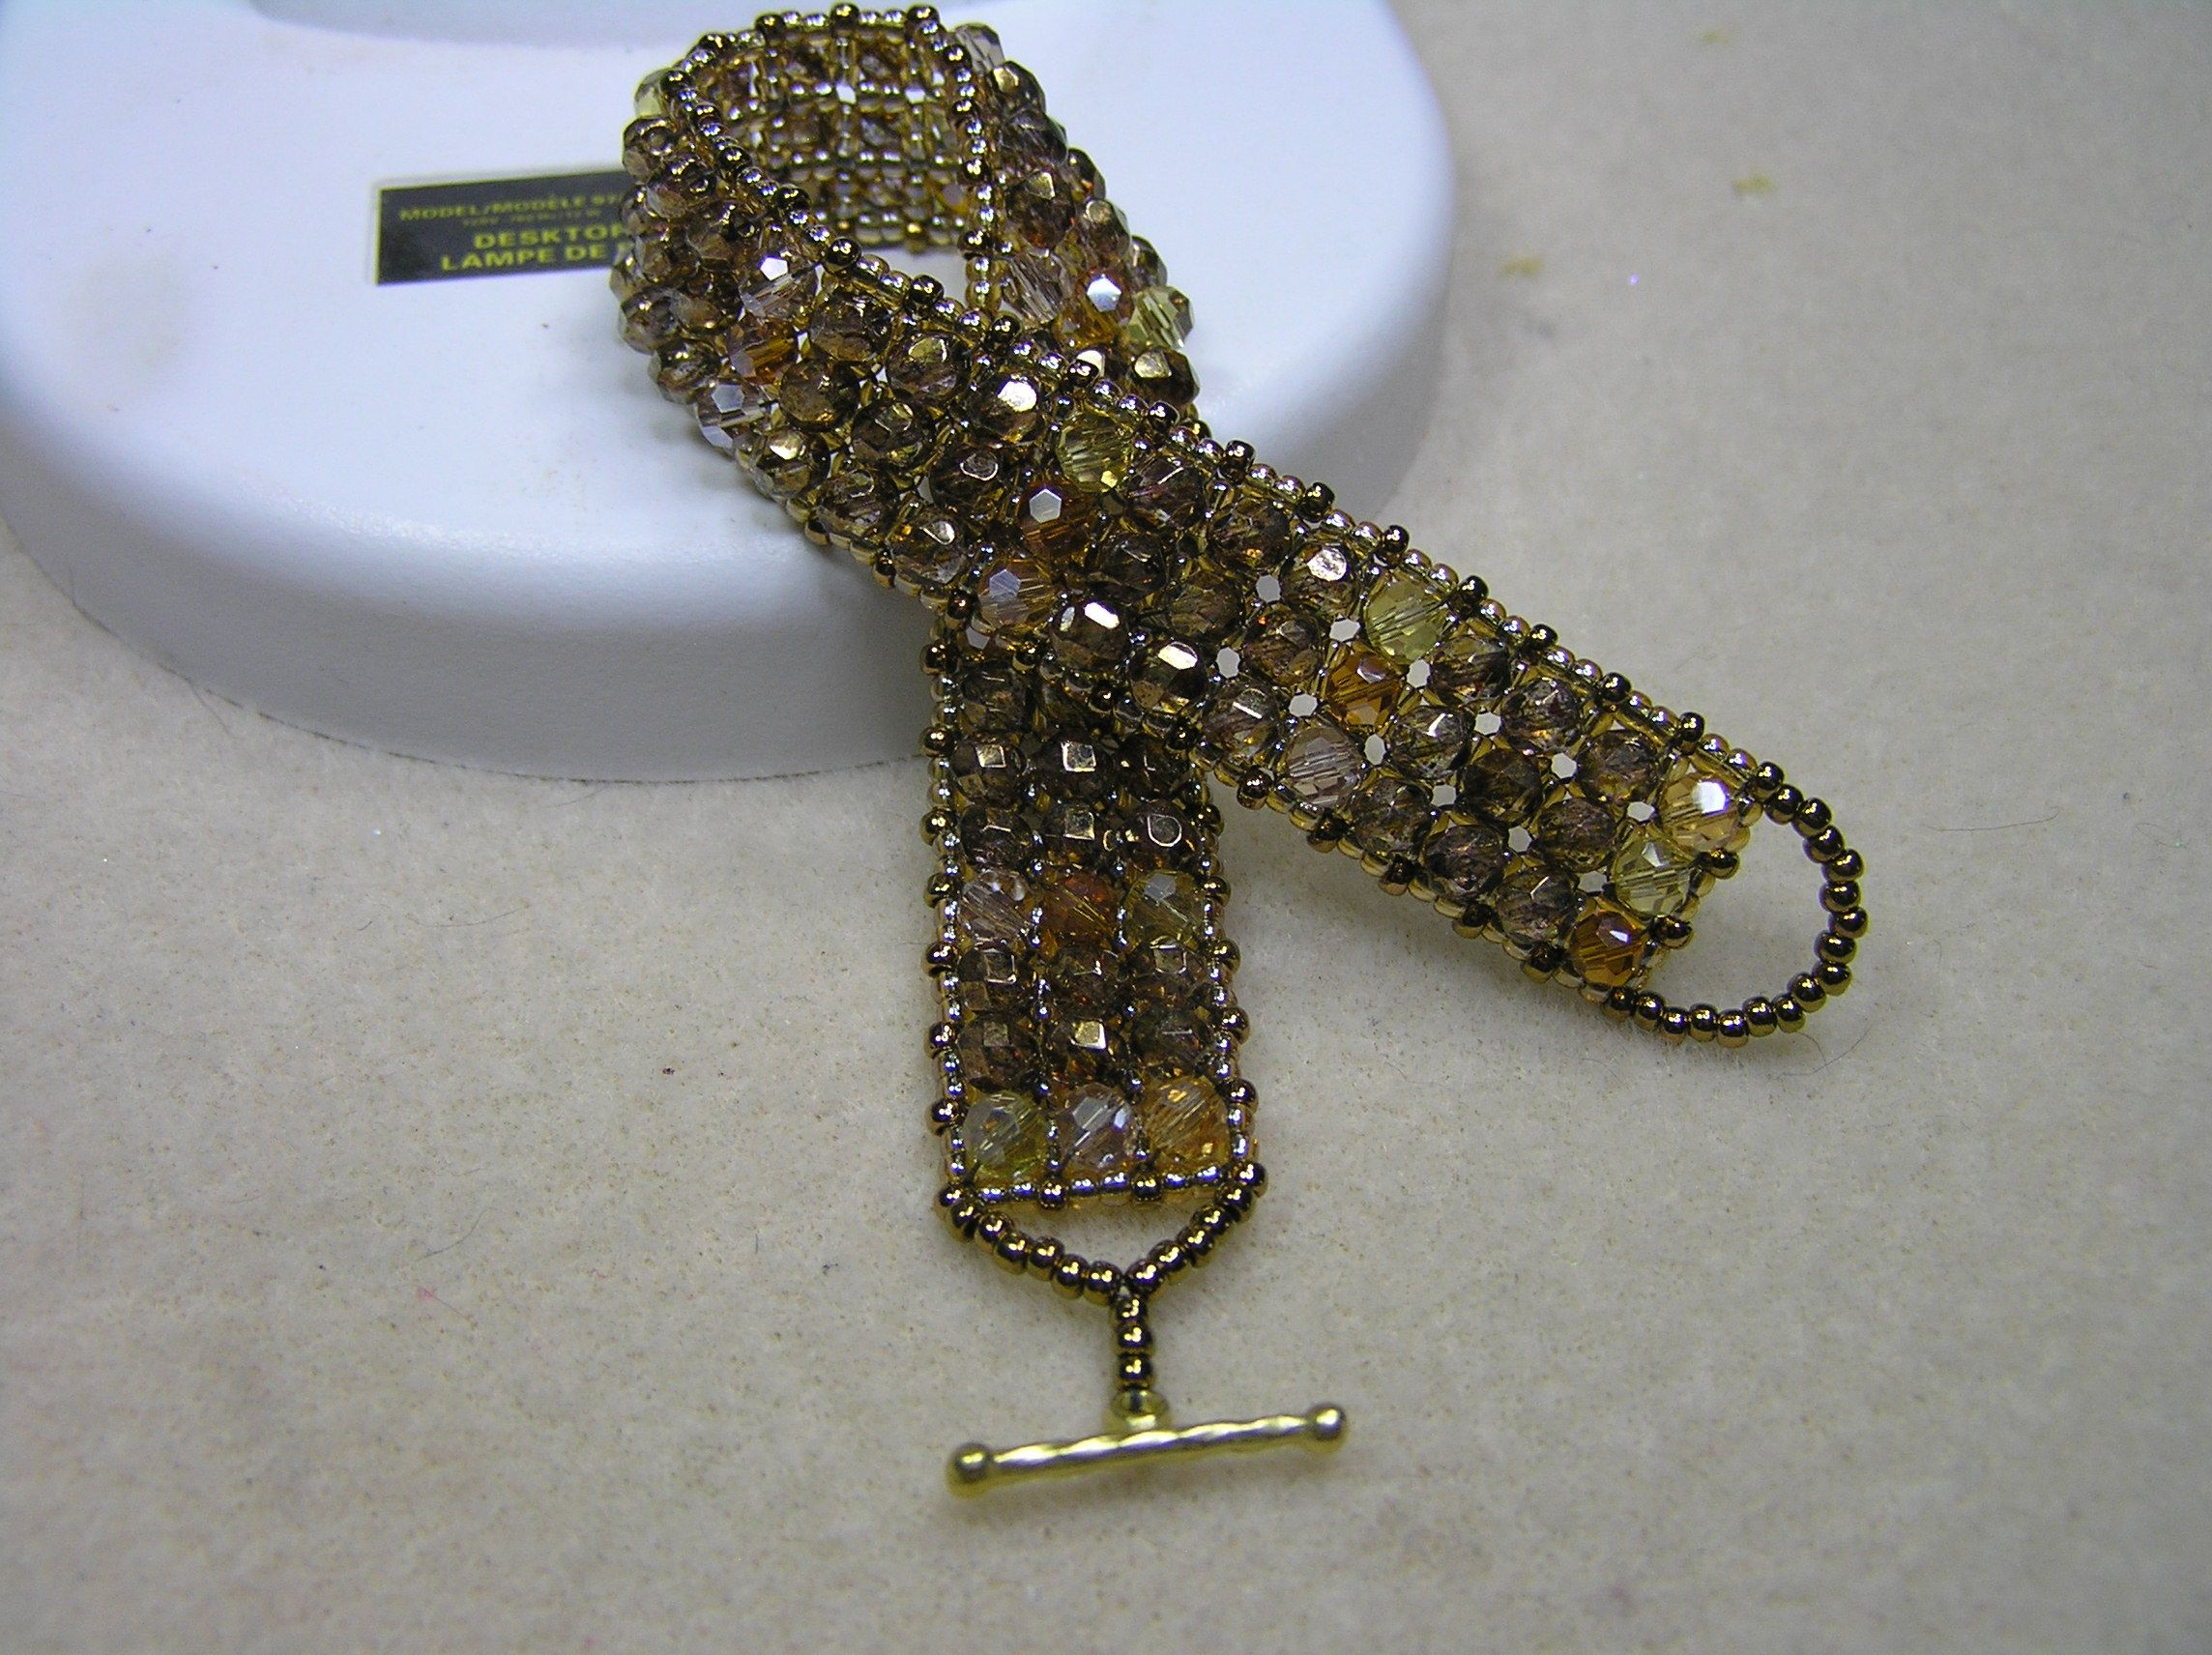 Bracelet i created using part of a pattern from the